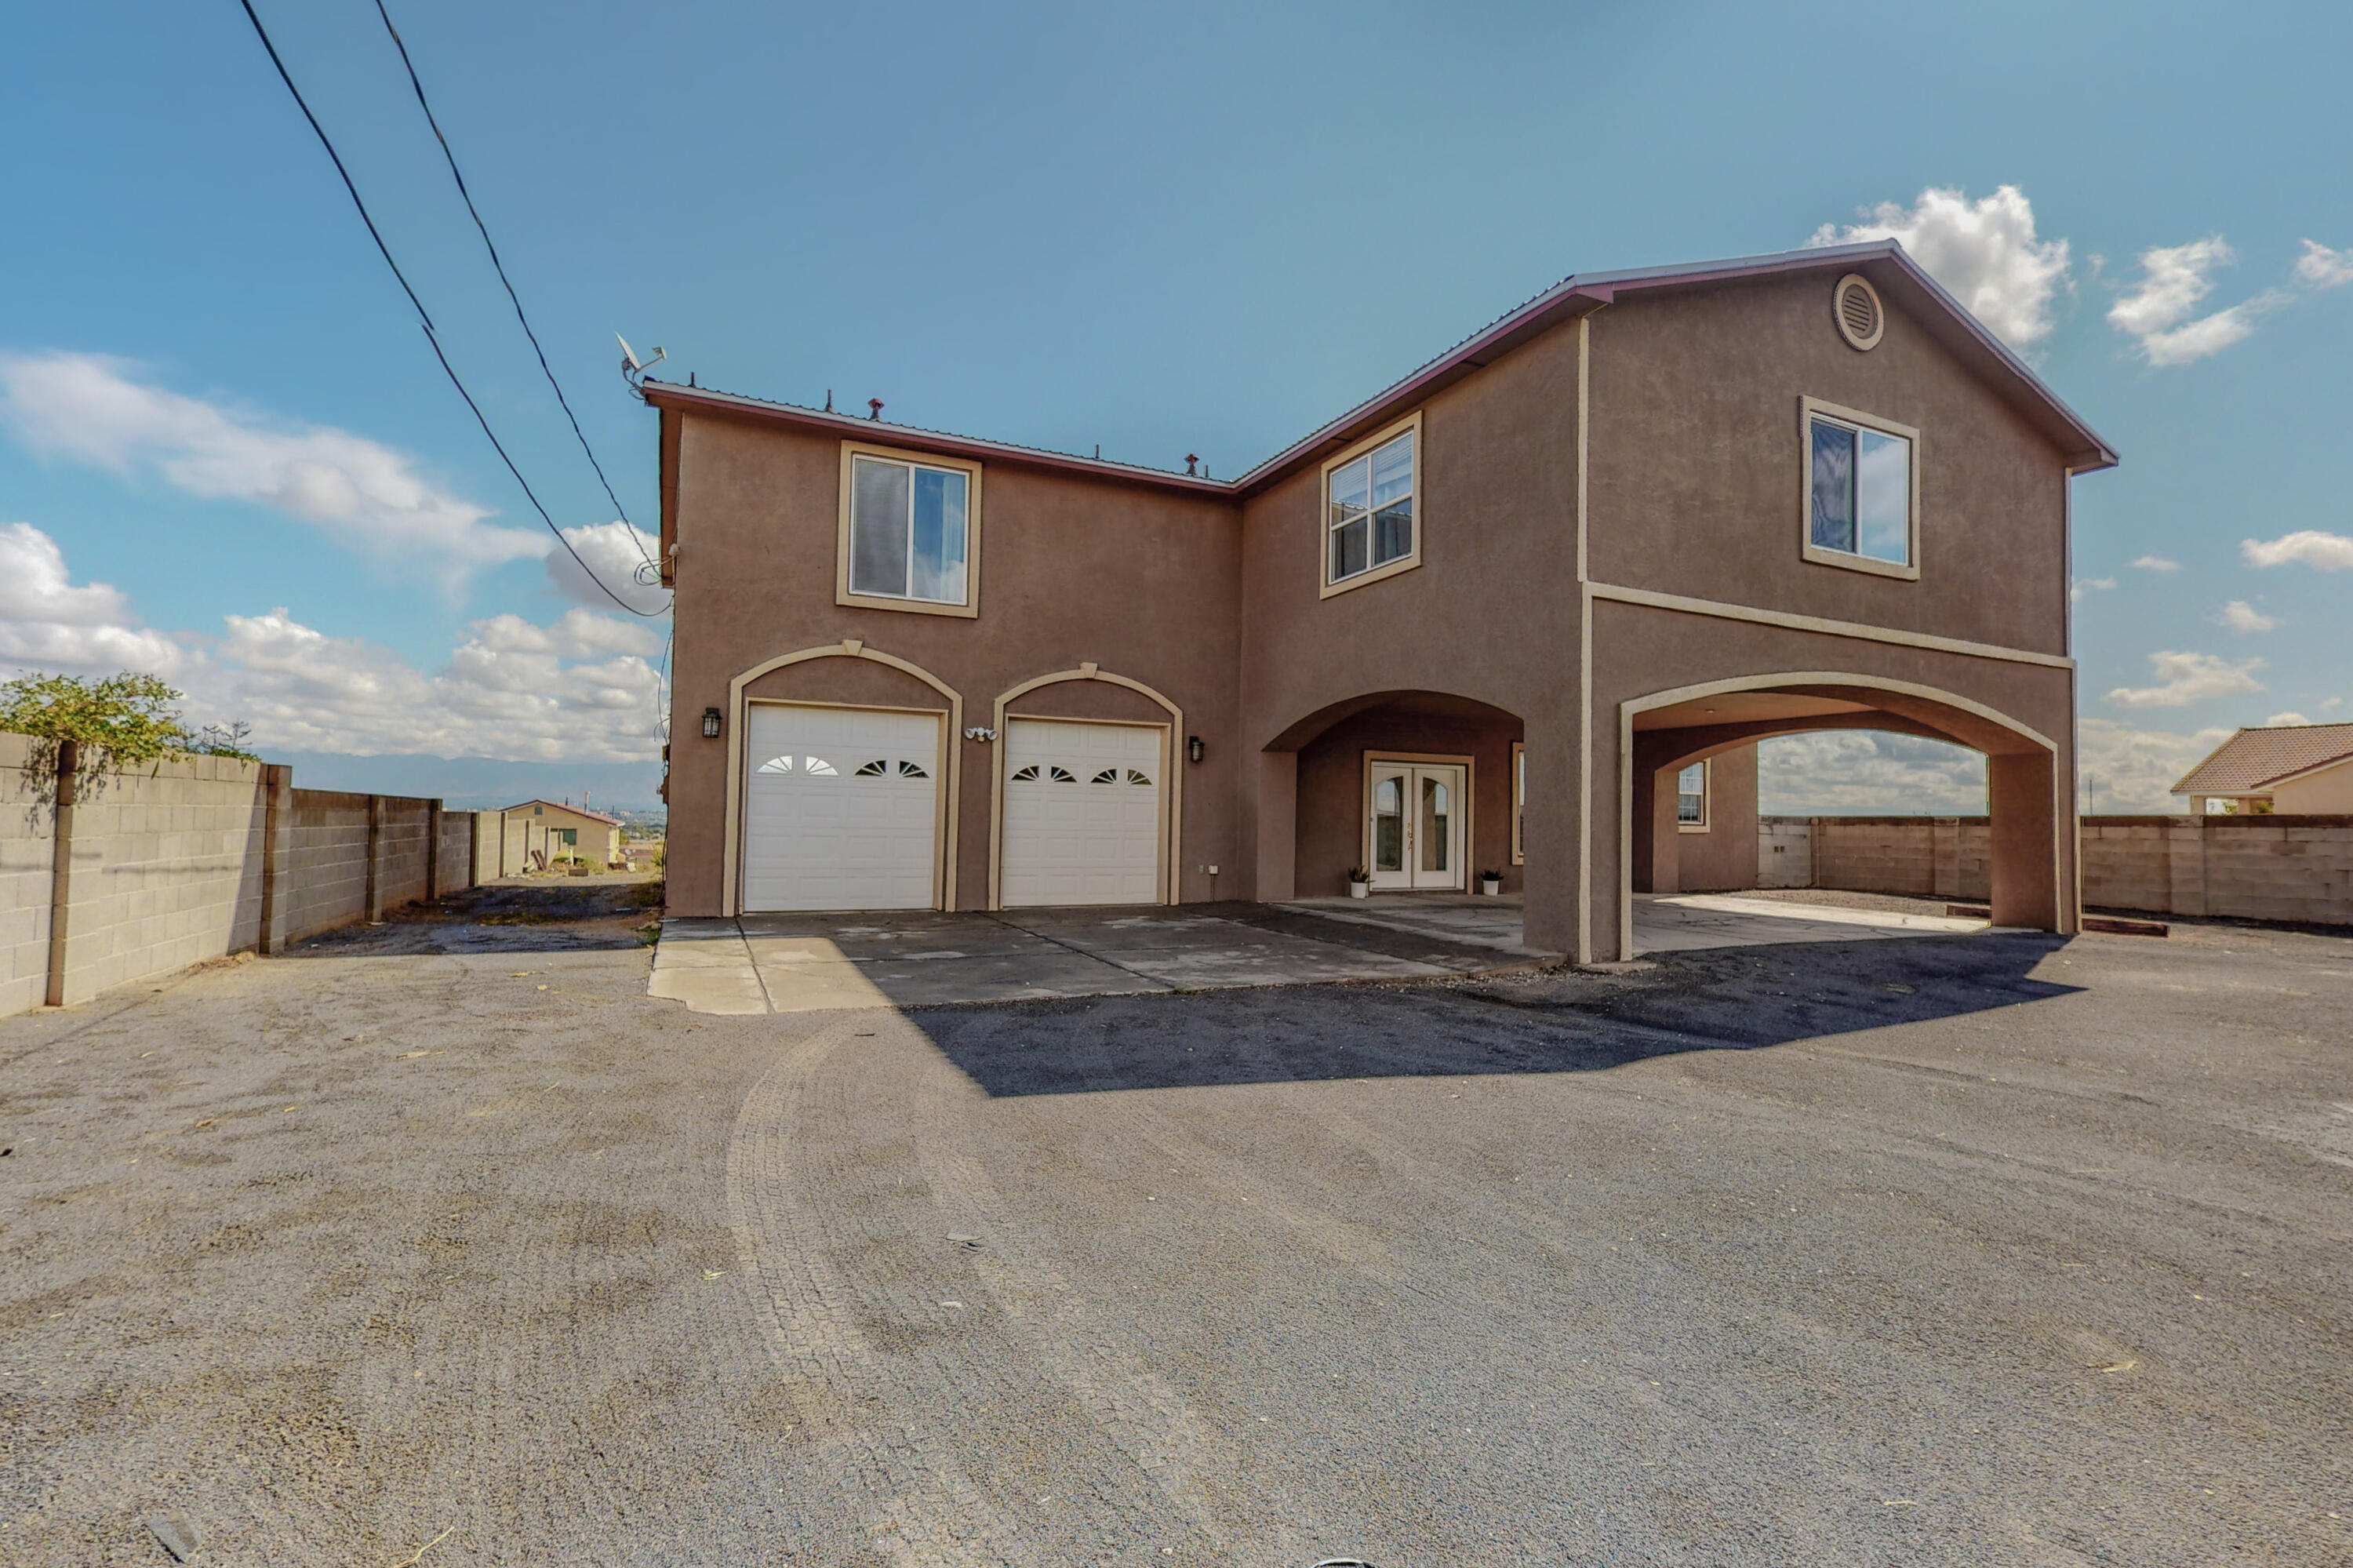 Beautiful home located in Albuquerque's Southwest Heights. HUGE two story house has many features to offer from the multiple living areas, spacious rooms, large master bedroom that includes a huge bathroom and large walk-in closet, with VIEWS. These views will take your breath away, as you can see all the sights of Albuquerque in one place from the comfort of your own home. Huge piece of land that buyers could be creative with. Garage is also another huge amenity is double sided, allowing for access from the front to the back of the house. This house is a rare find, BRING YOUR BUYERS QUICK, WILL NOT LAST LONG